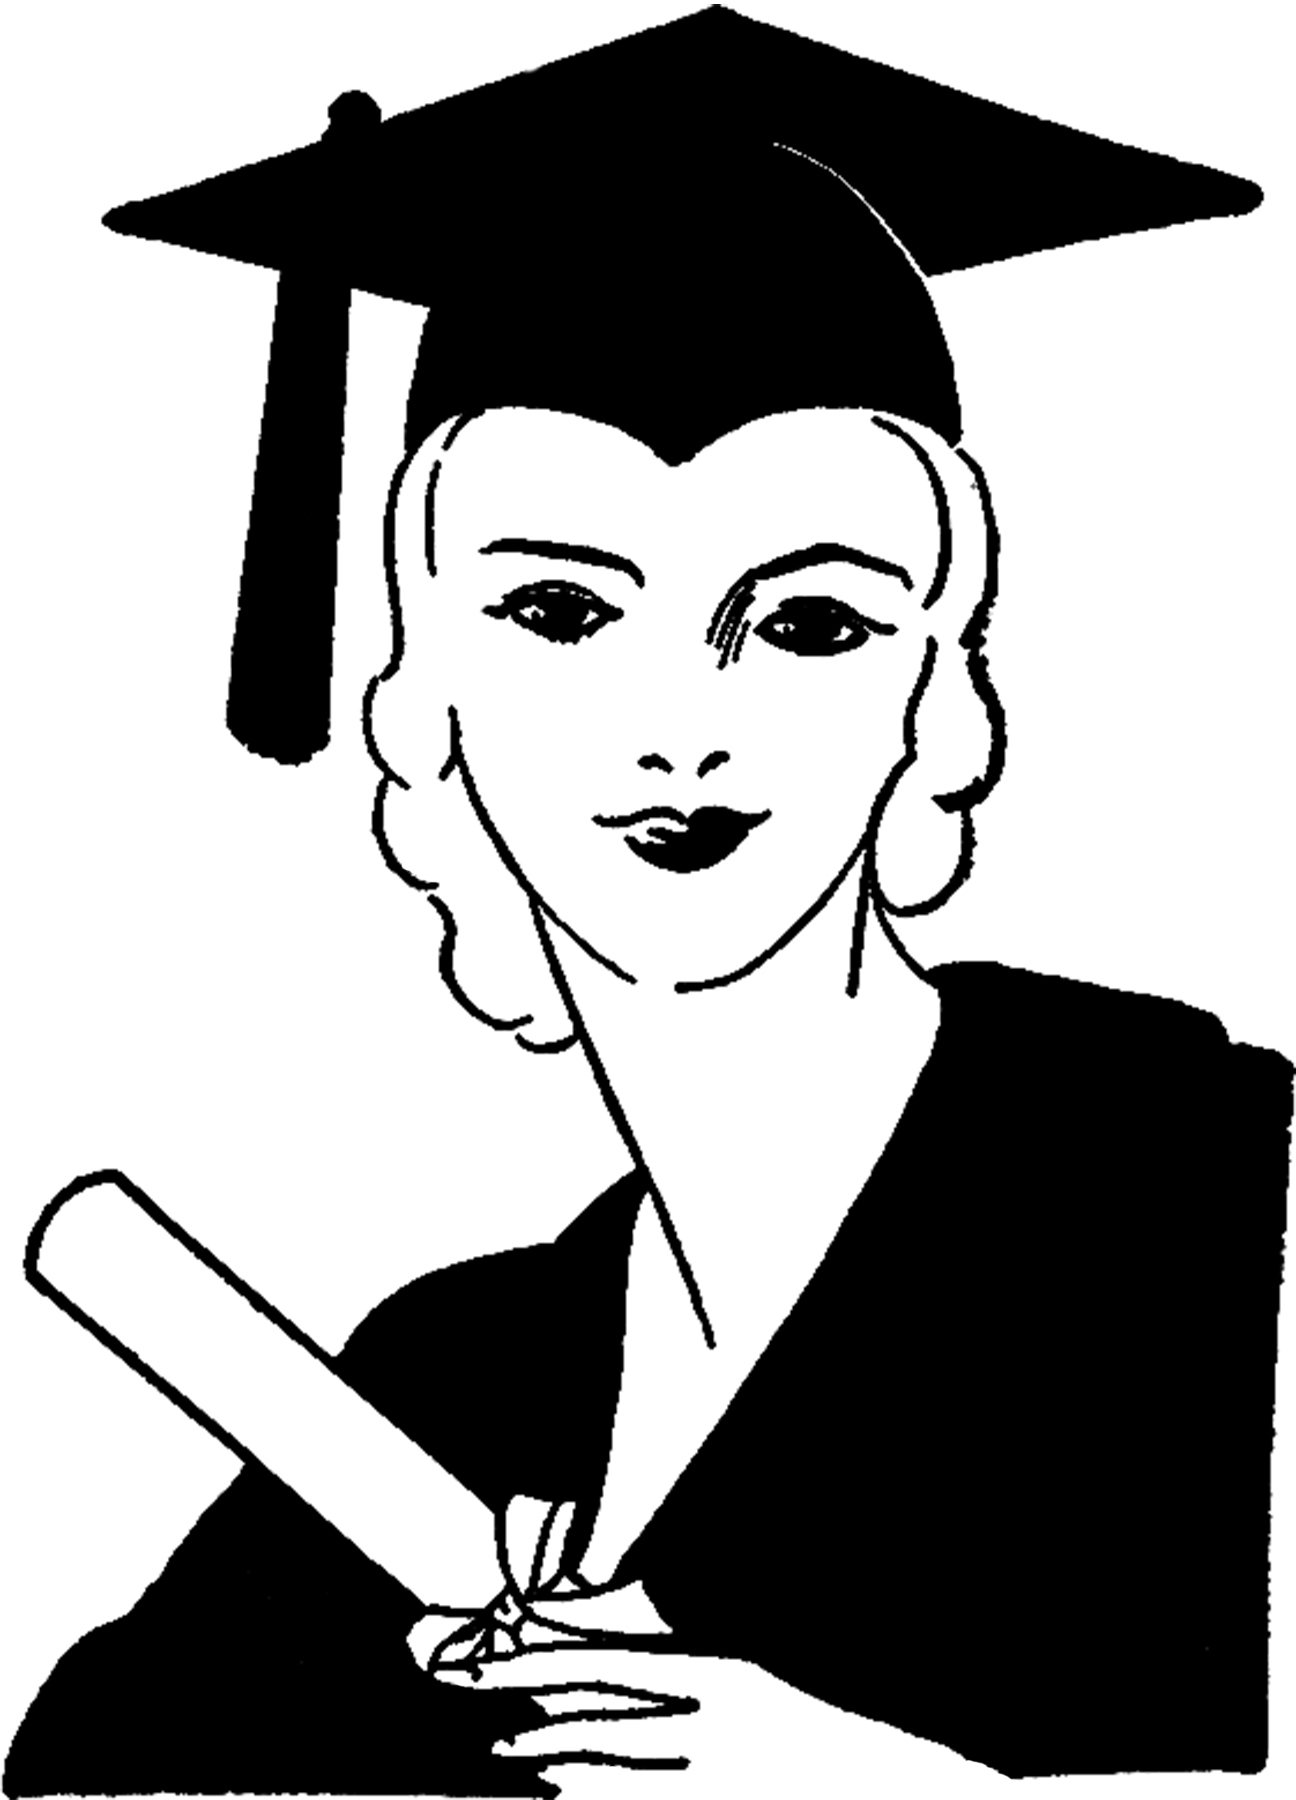 Vintage Graduation Lady Image The Graphics Fairy